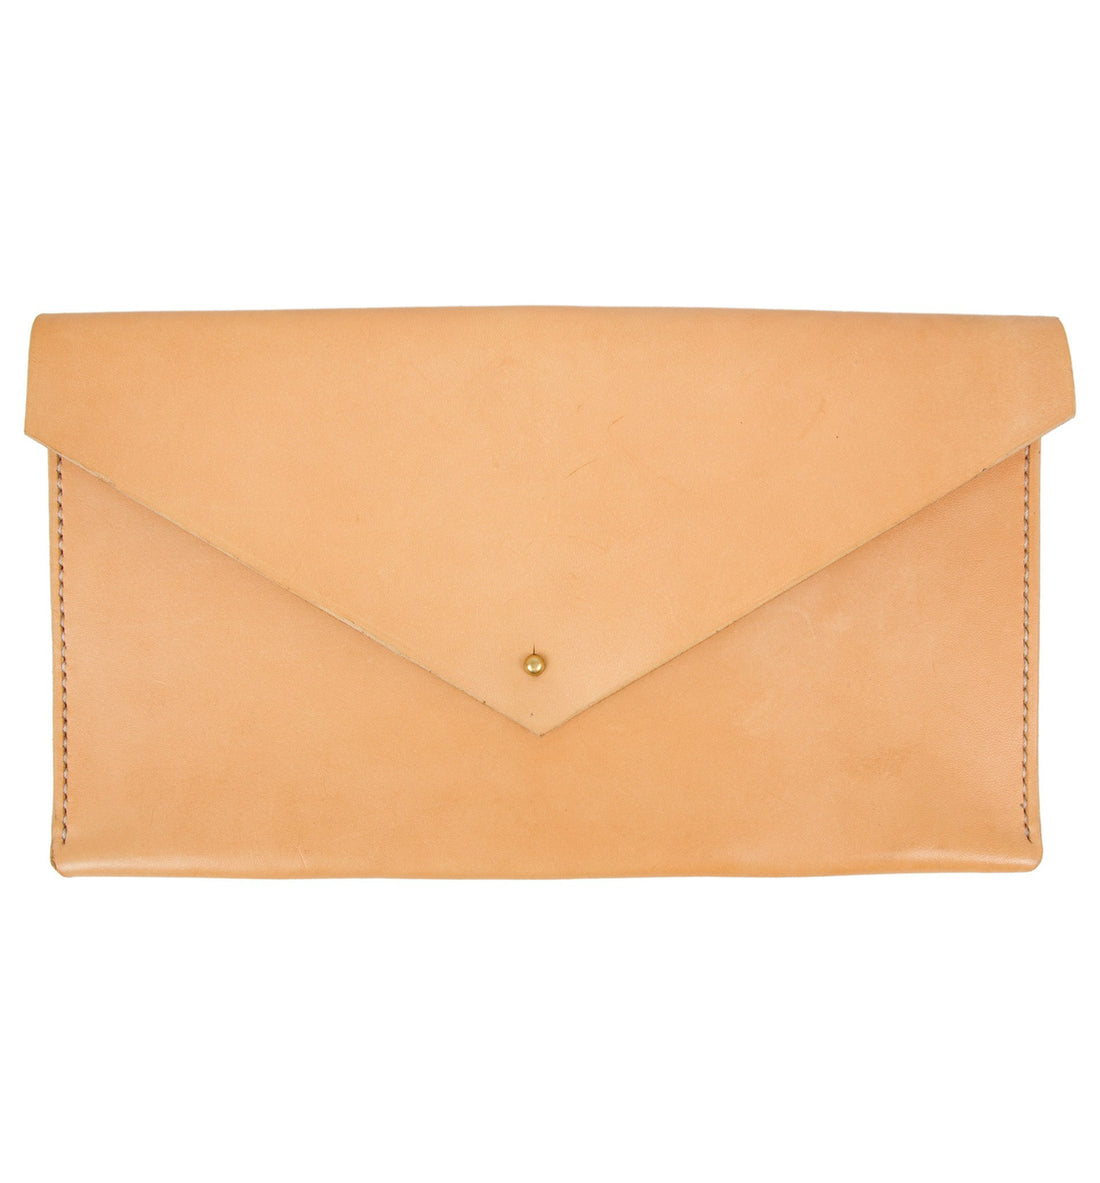 Bolt West Envelope Clutch - Accessories: Wallets - Iron and Resin